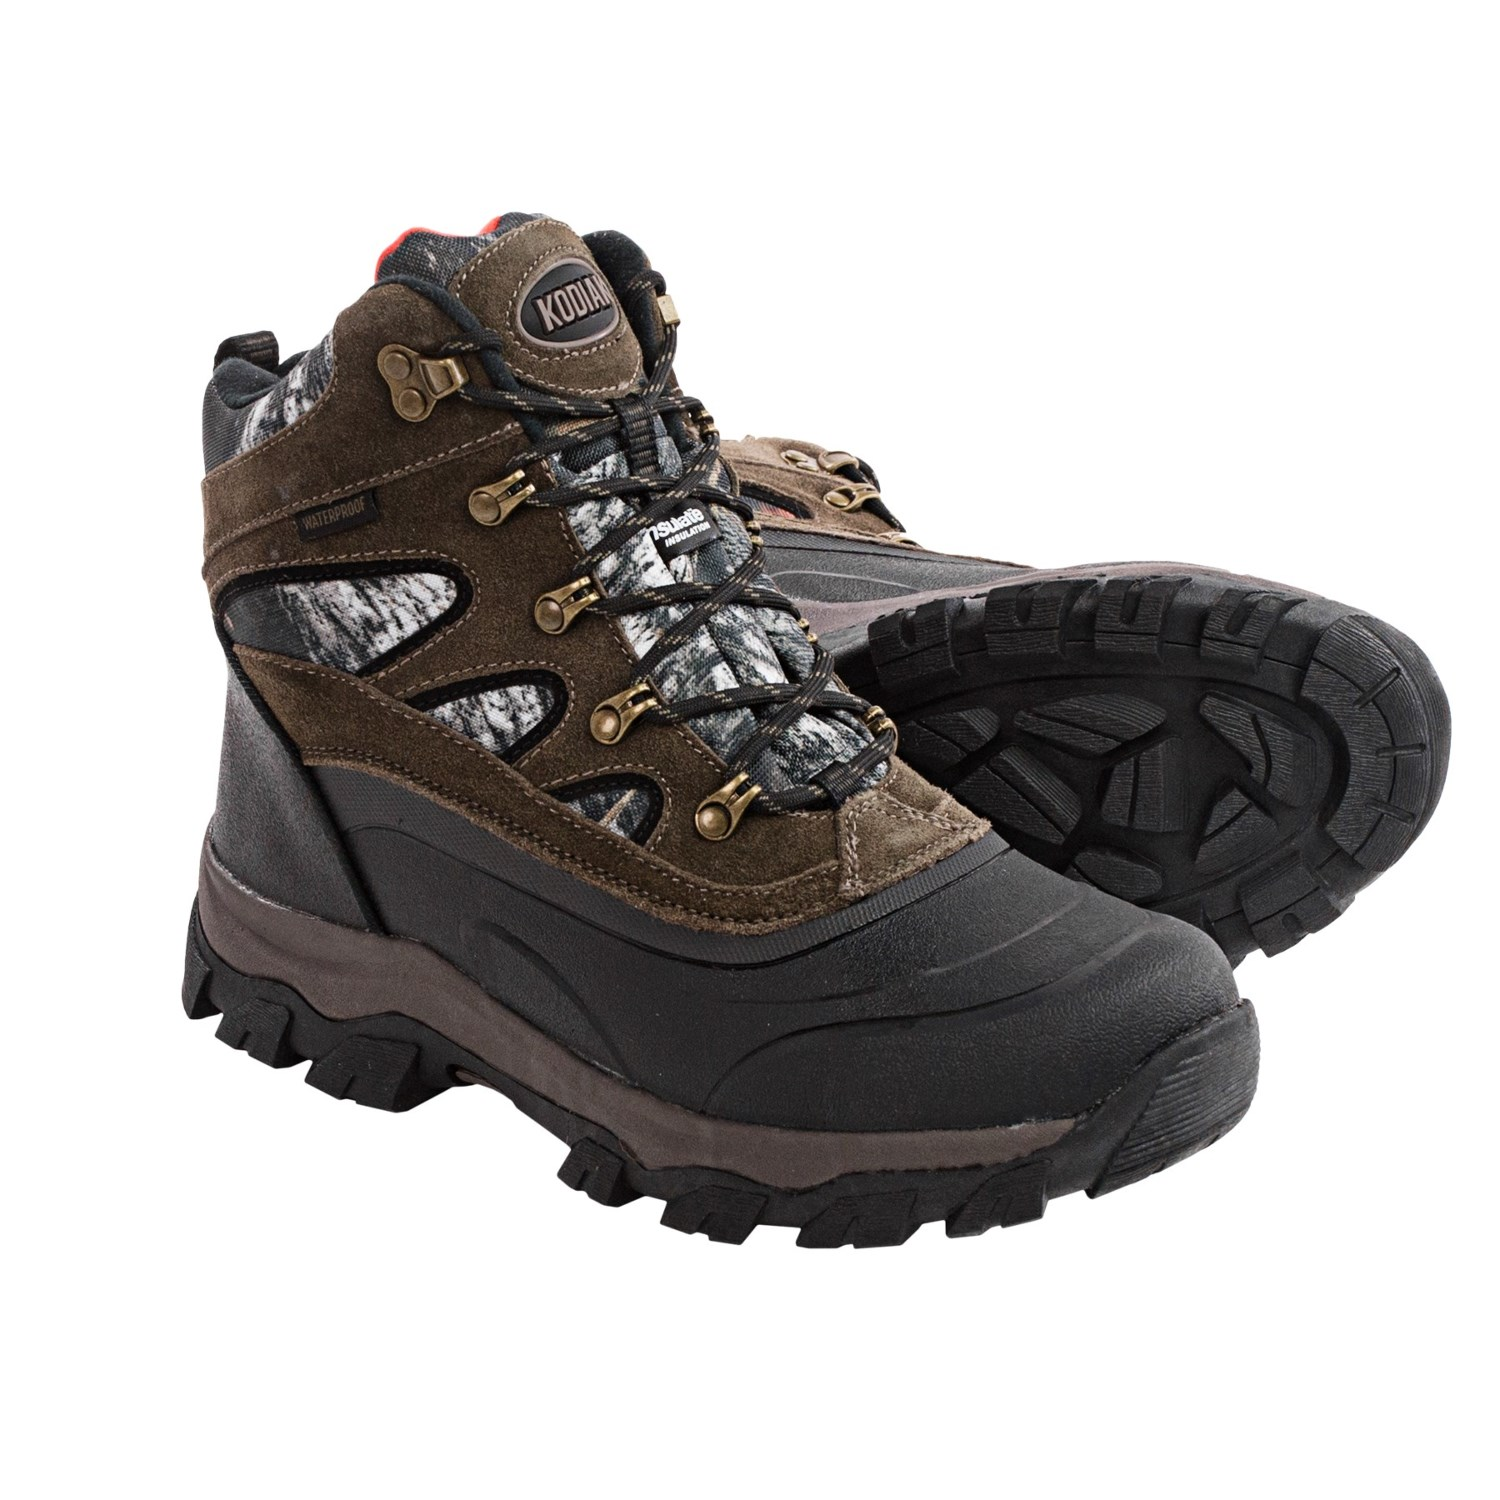 Mens Winter Snow Boots lGmm71Tt